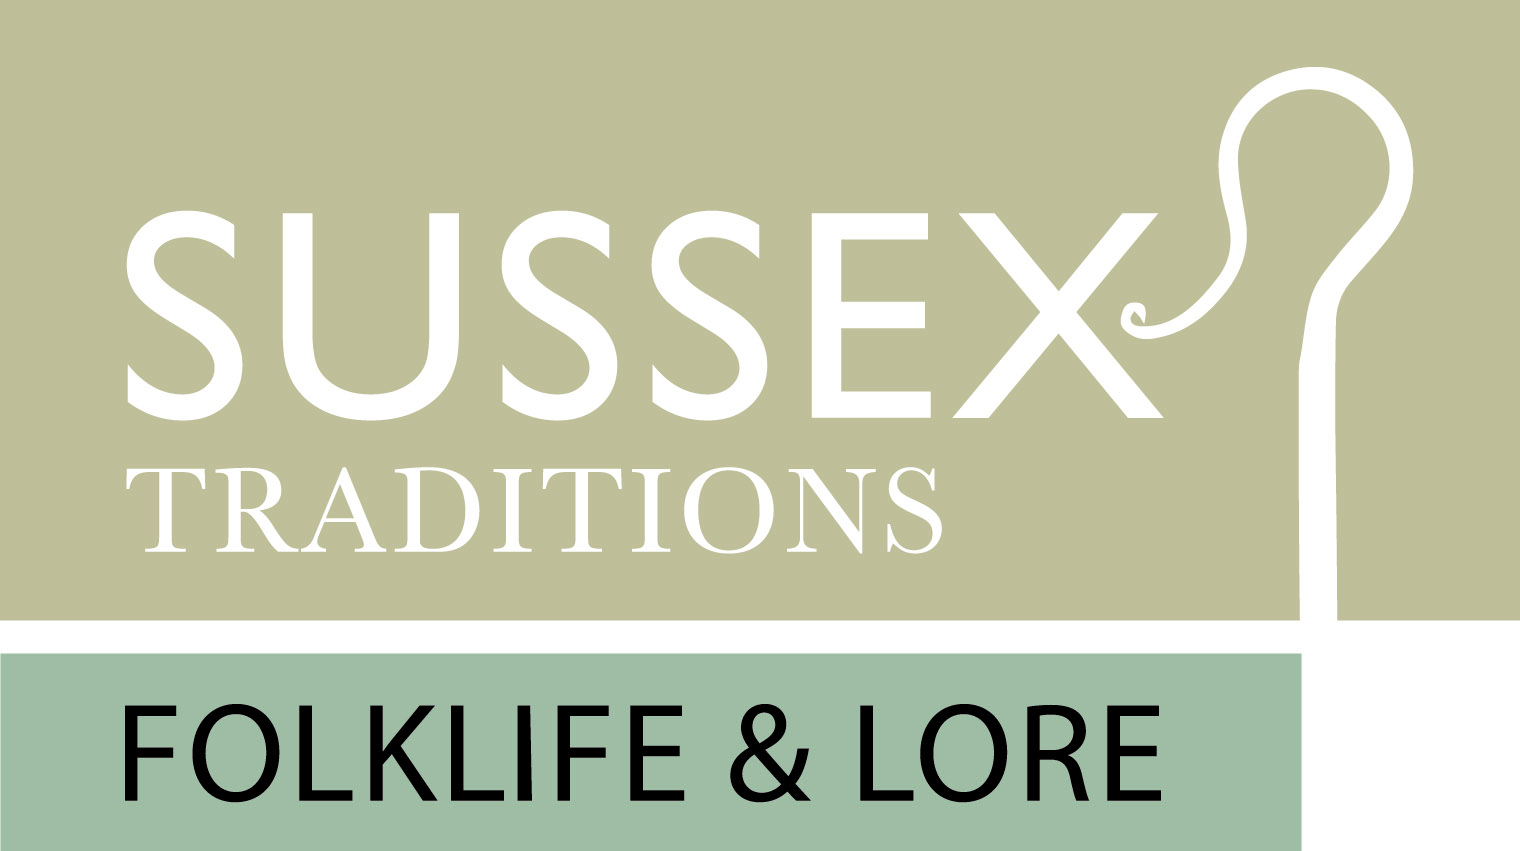 Sussex Traditions logo